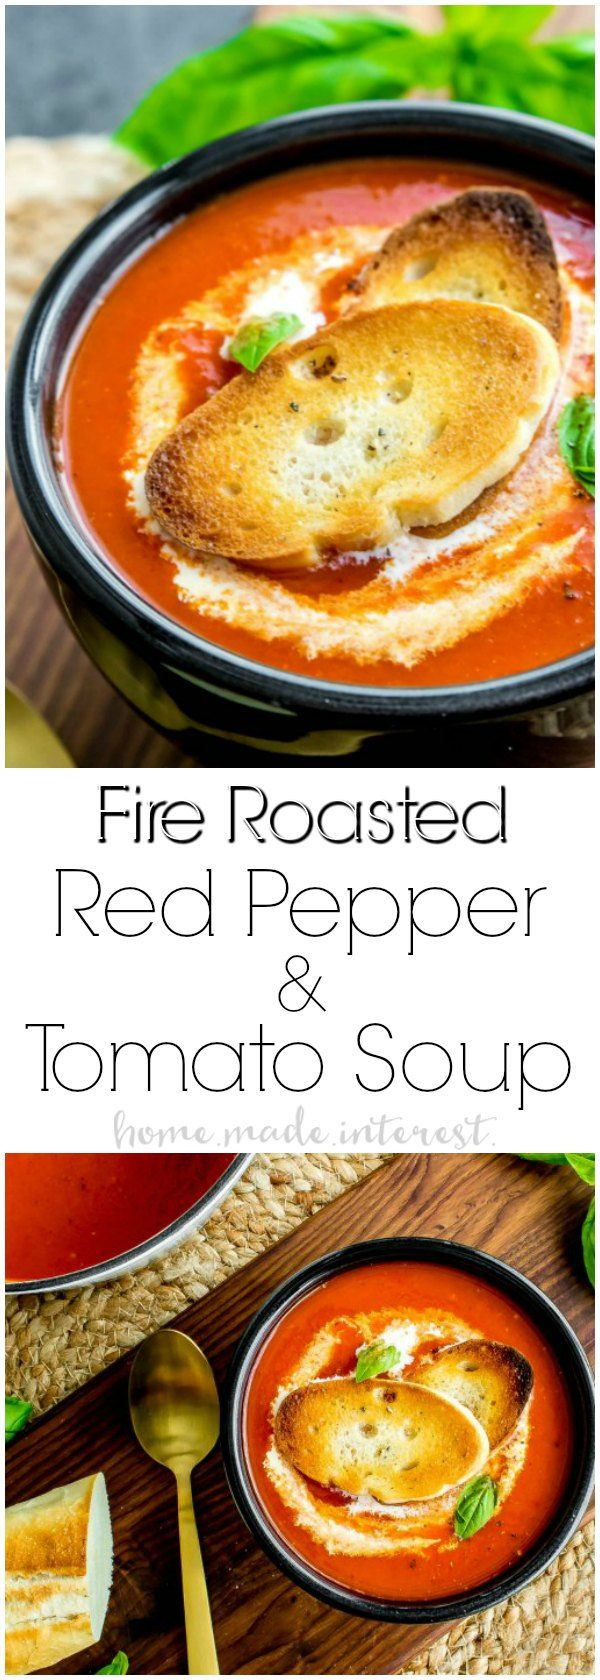 Fire Roasted Red Pepper Soup is a smoky tomato and red pepper winter soup recipe that is best served with a drizzle of cream and a crusty piece of bread or a grilled cheese sandwich! This easy soup recipe is the ultimate winter comfort food. It's a combination of tomato soup and the smoky flavor of roasted red peppers.  #soup #tomatoes #souprecipes